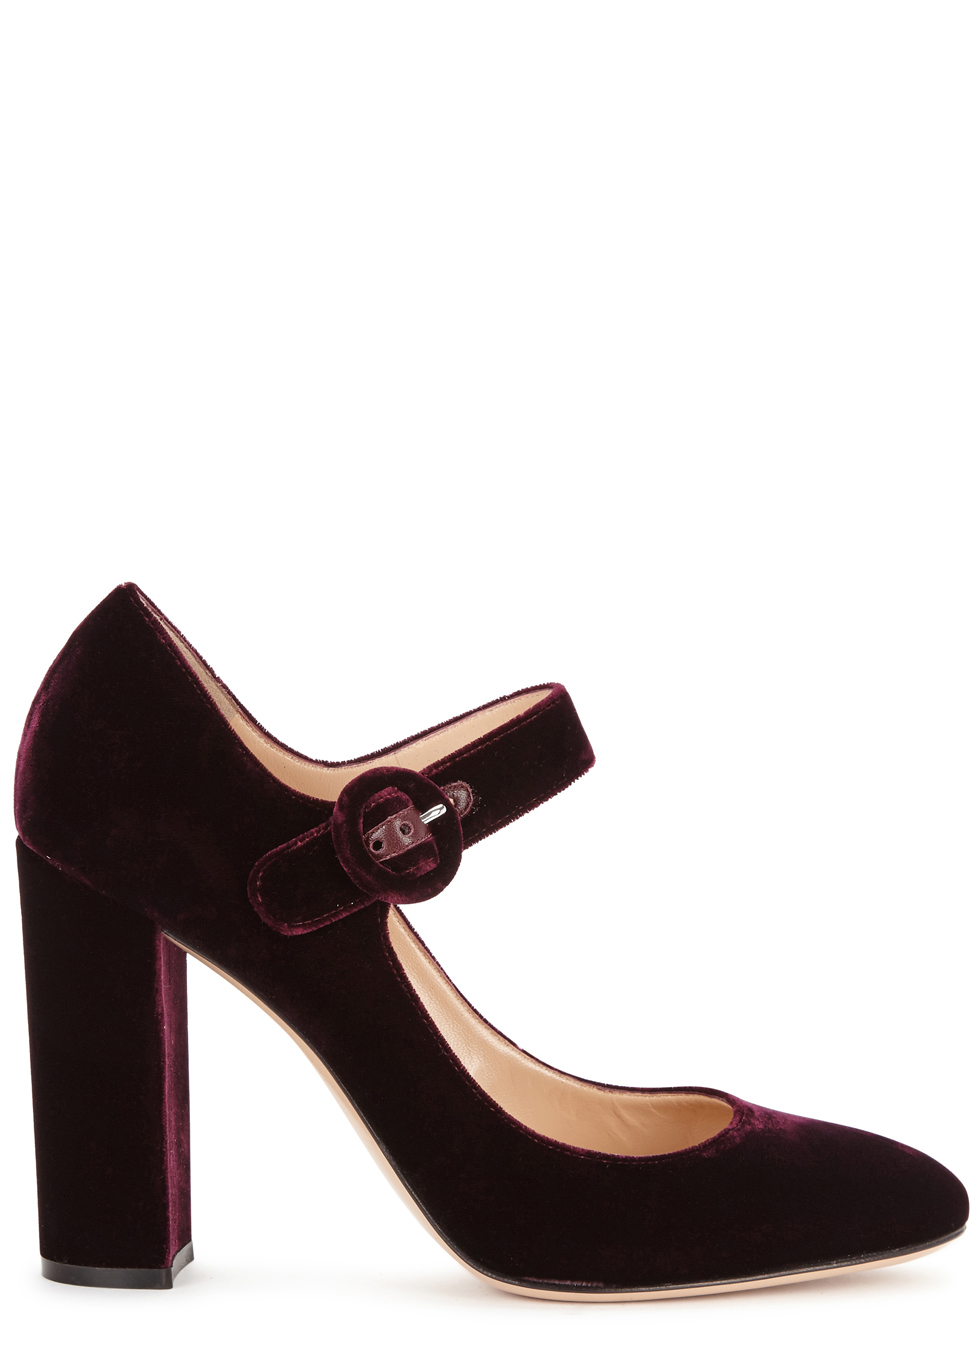 Lorraine Dark Purple Velvet Pumps - predominant colour: aubergine; occasions: evening; material: velvet; heel height: high; heel: block; toe: round toe; style: mary janes; finish: plain; pattern: plain; season: a/w 2016; wardrobe: event